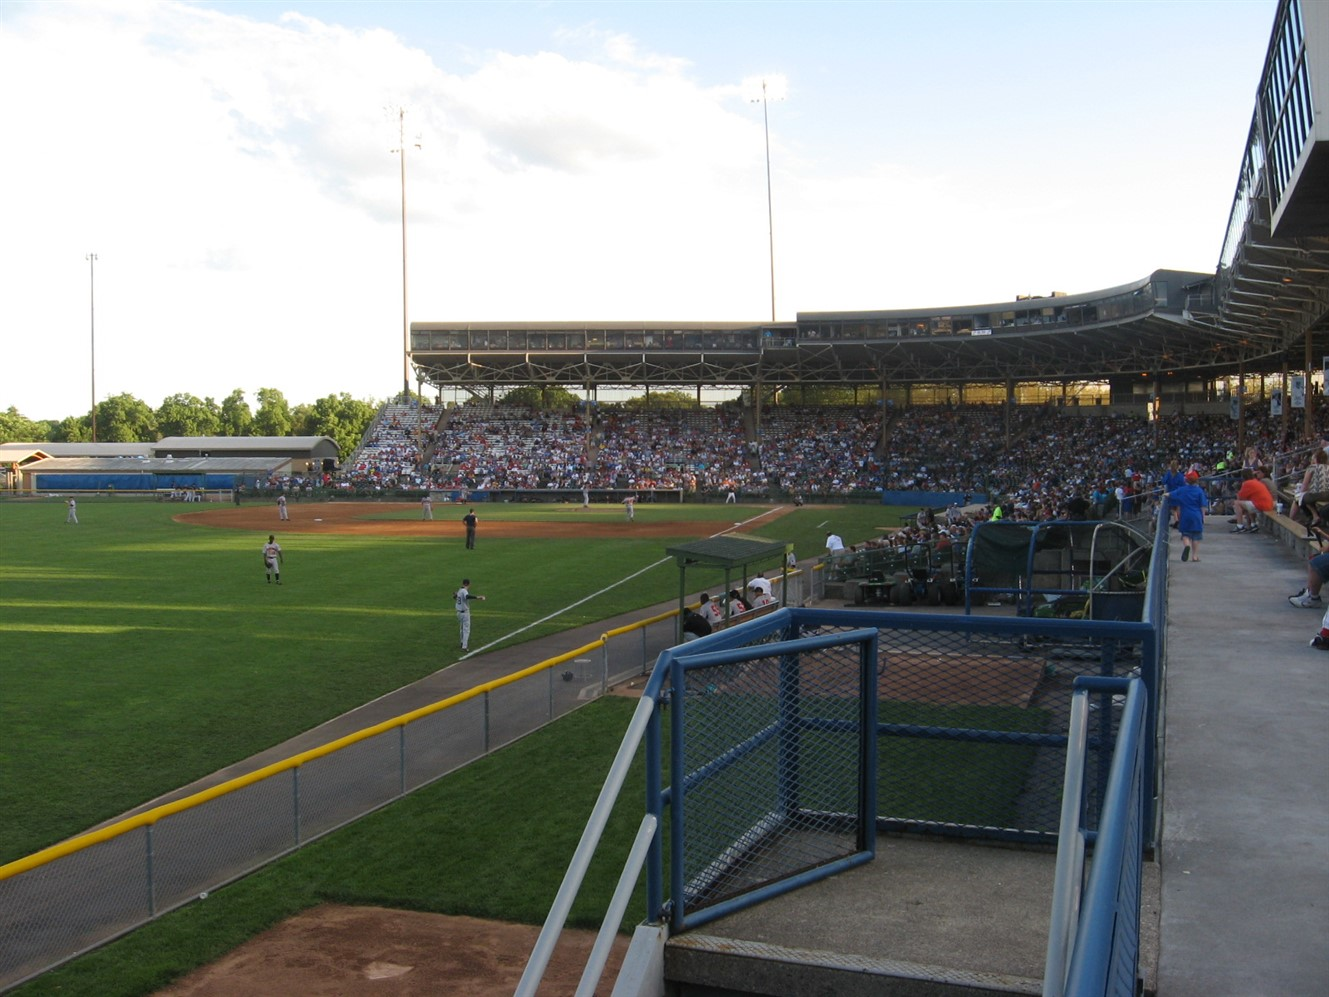 2008 06 14 97 Columbus Clippers Baseball.jpg